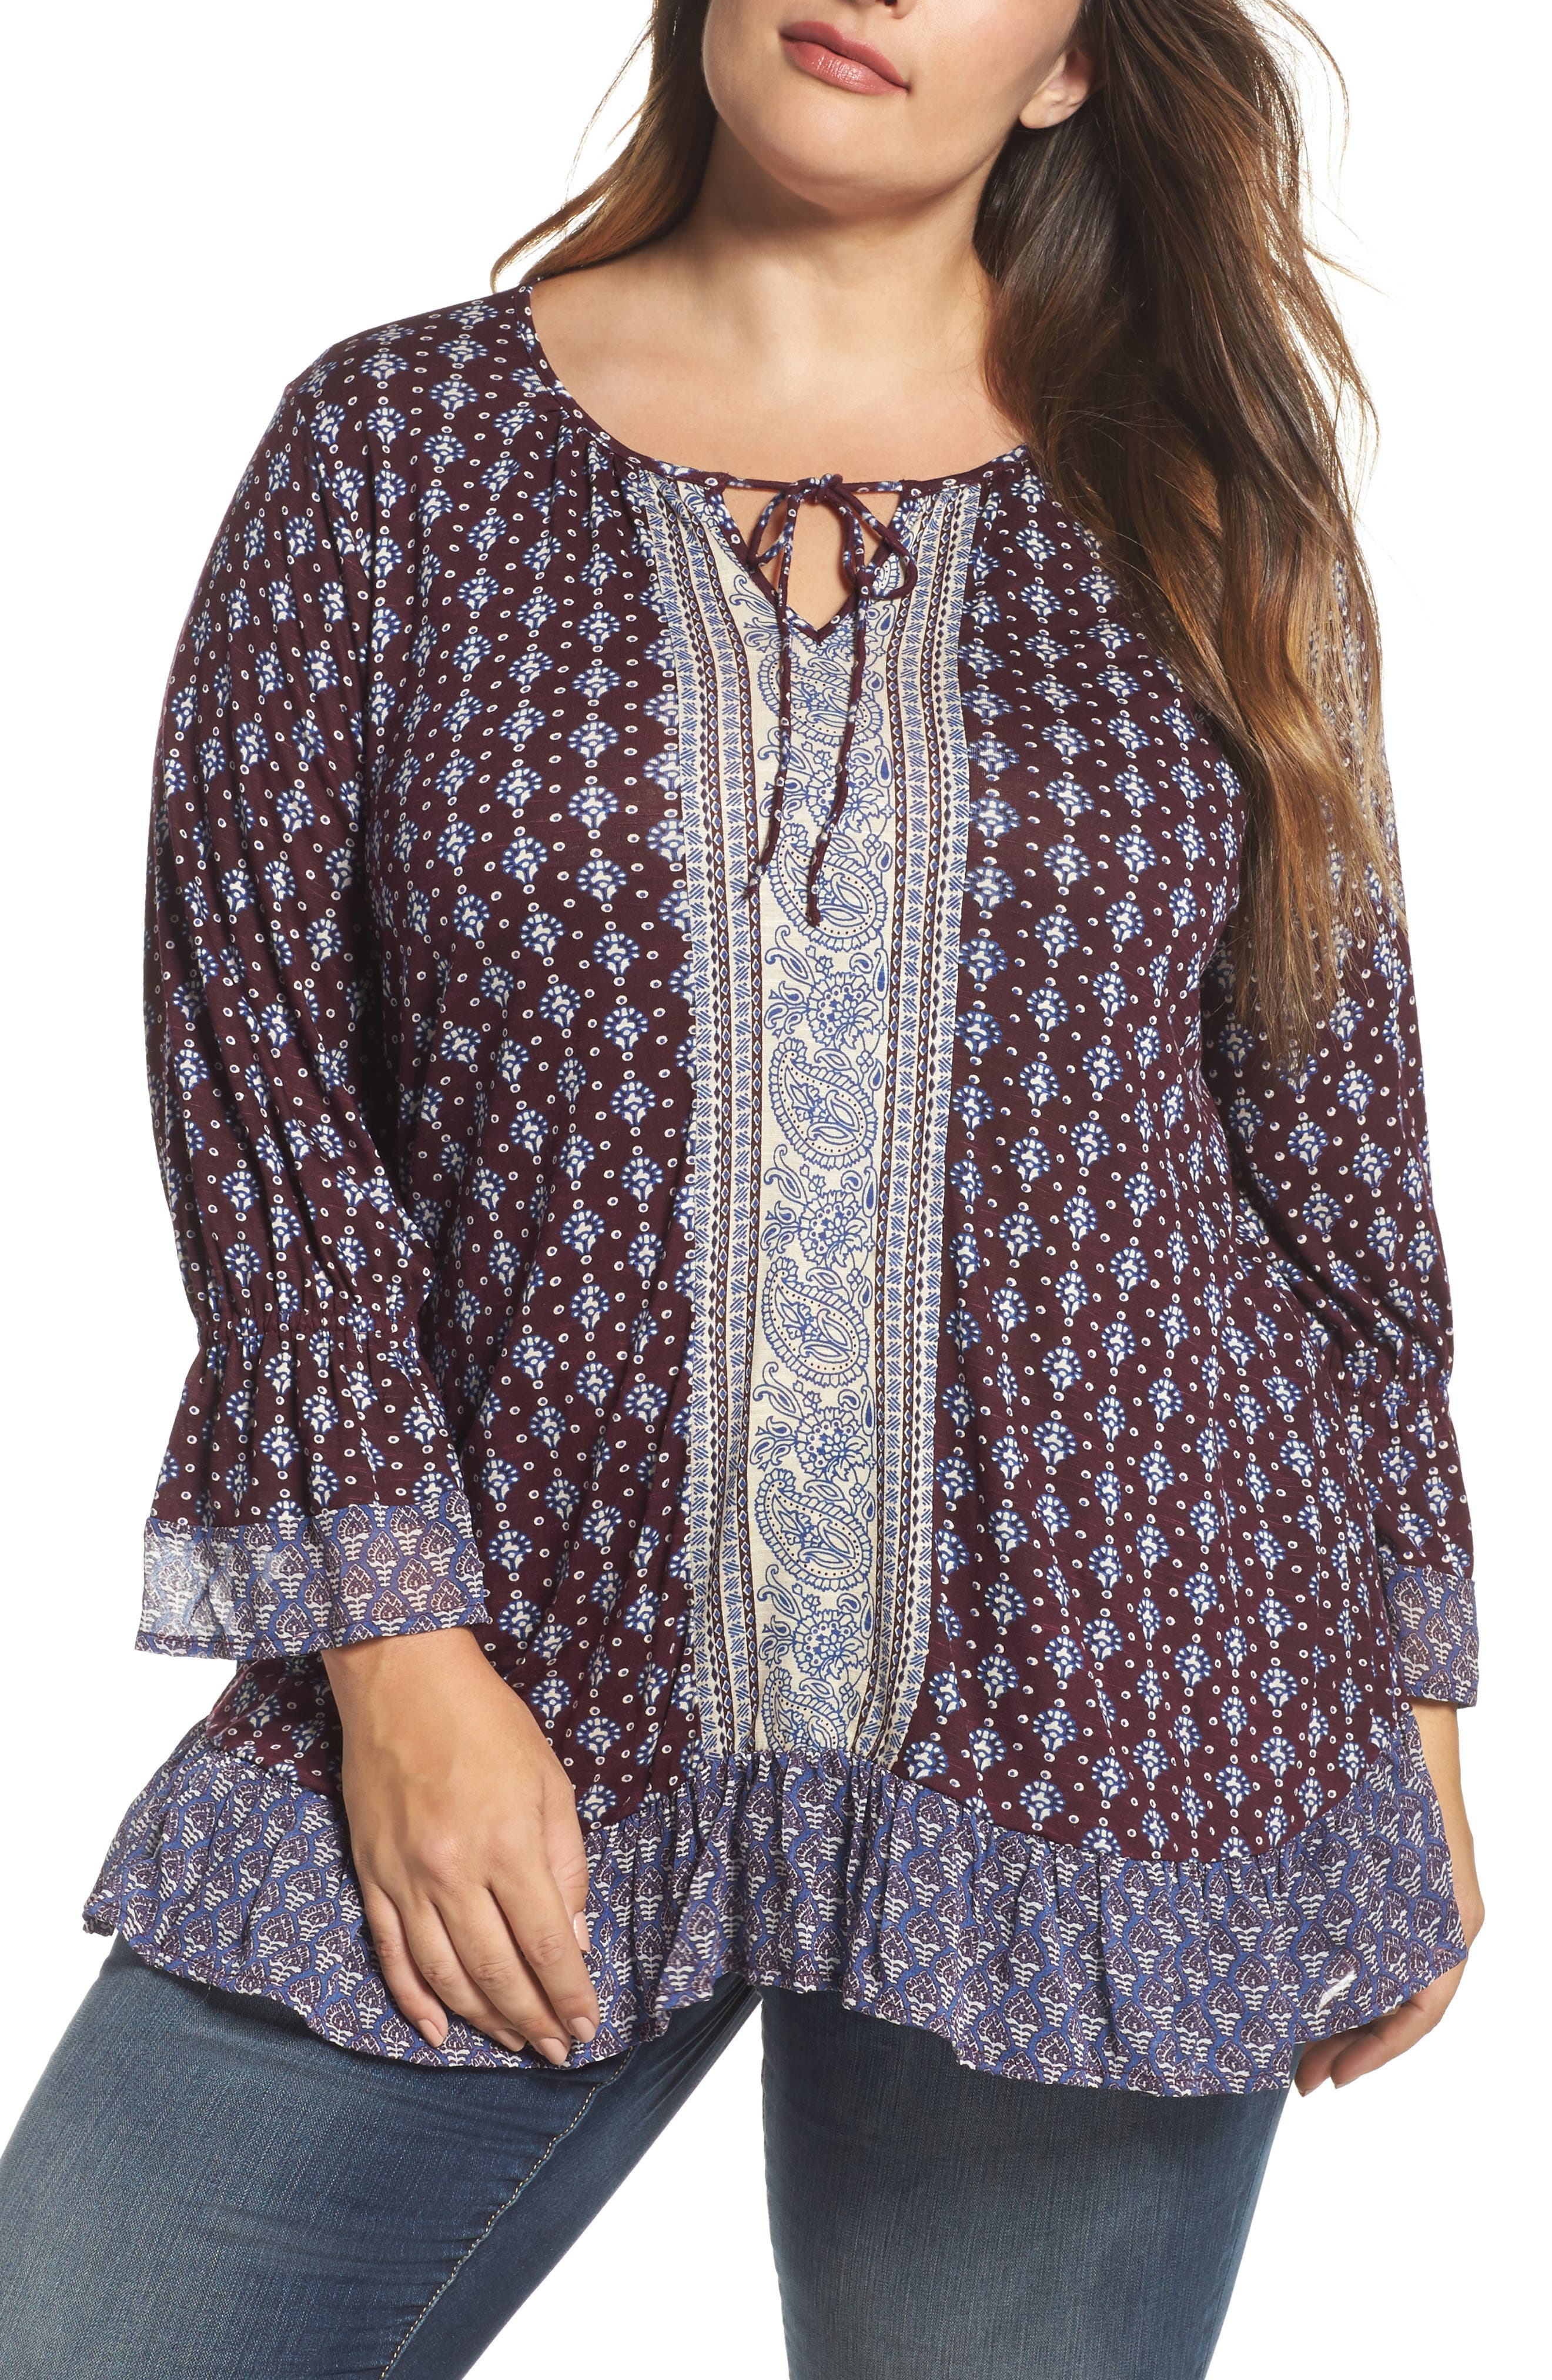 Alternate Image 1 Selected - Lucky Brand Mix Print Peasant Top (Plus Size)